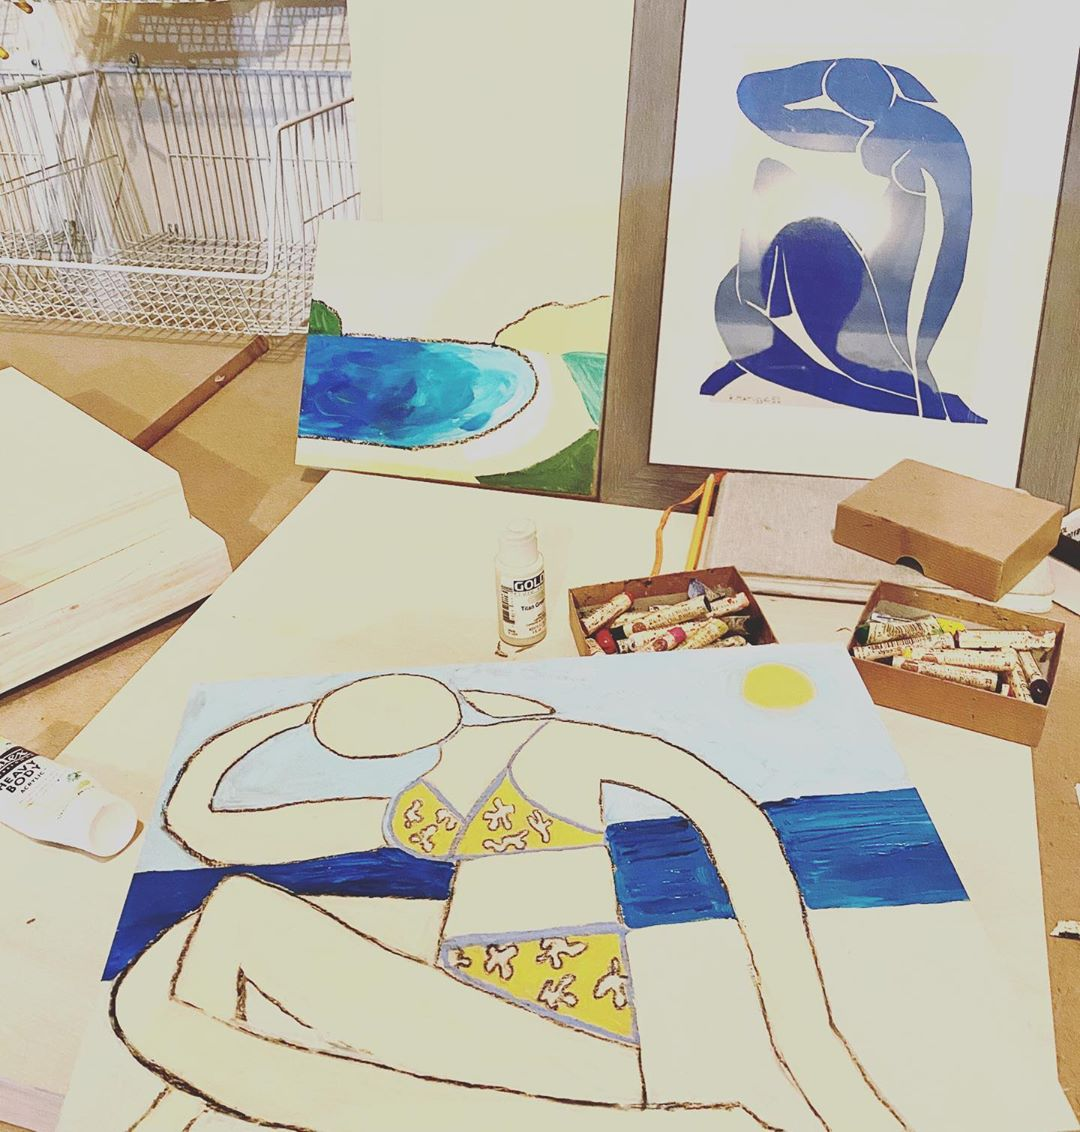 LBI It's all starting! These works are inspired by woodblock printing, Matisse, ocea…